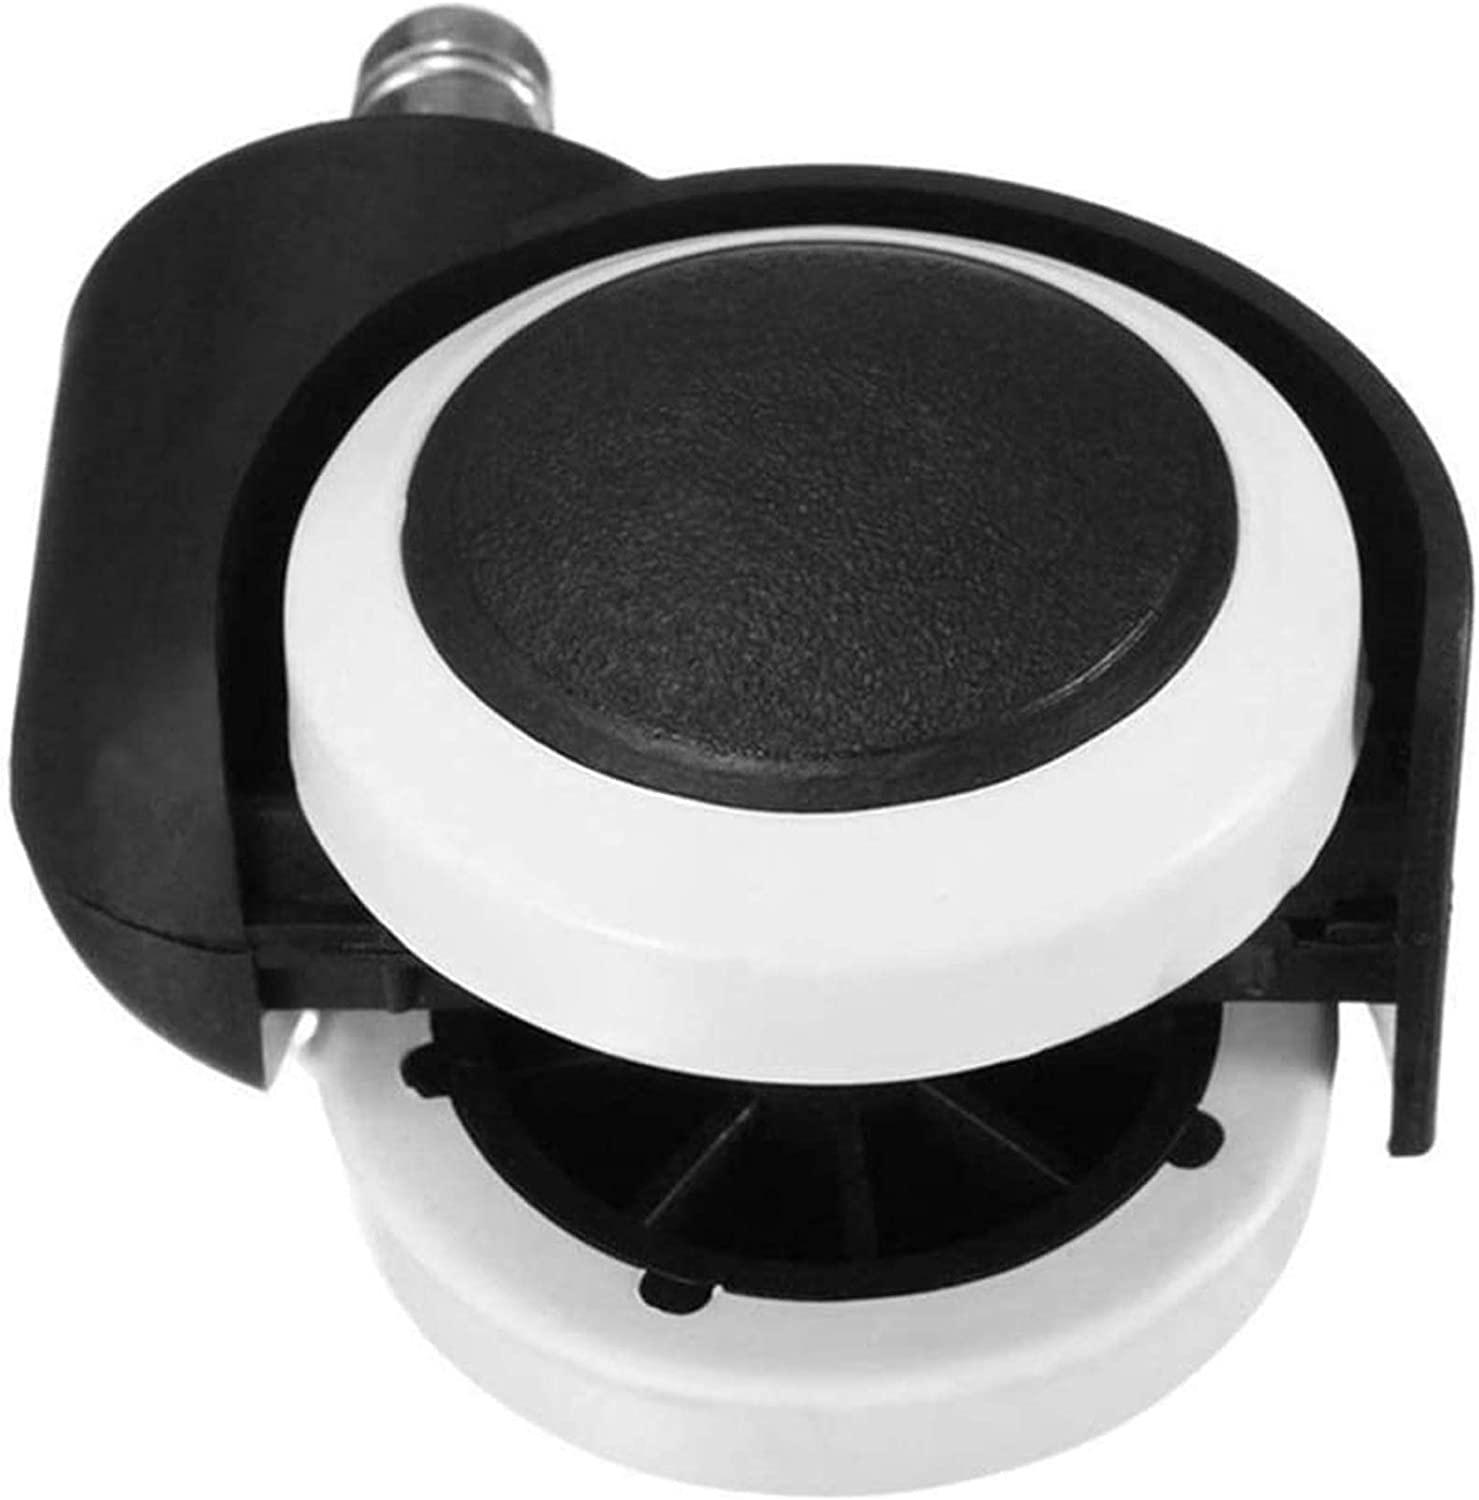 LLC- SUDA Plate Casters 5 Universal Free shipping / New Furnit Chair Office Ranking TOP19